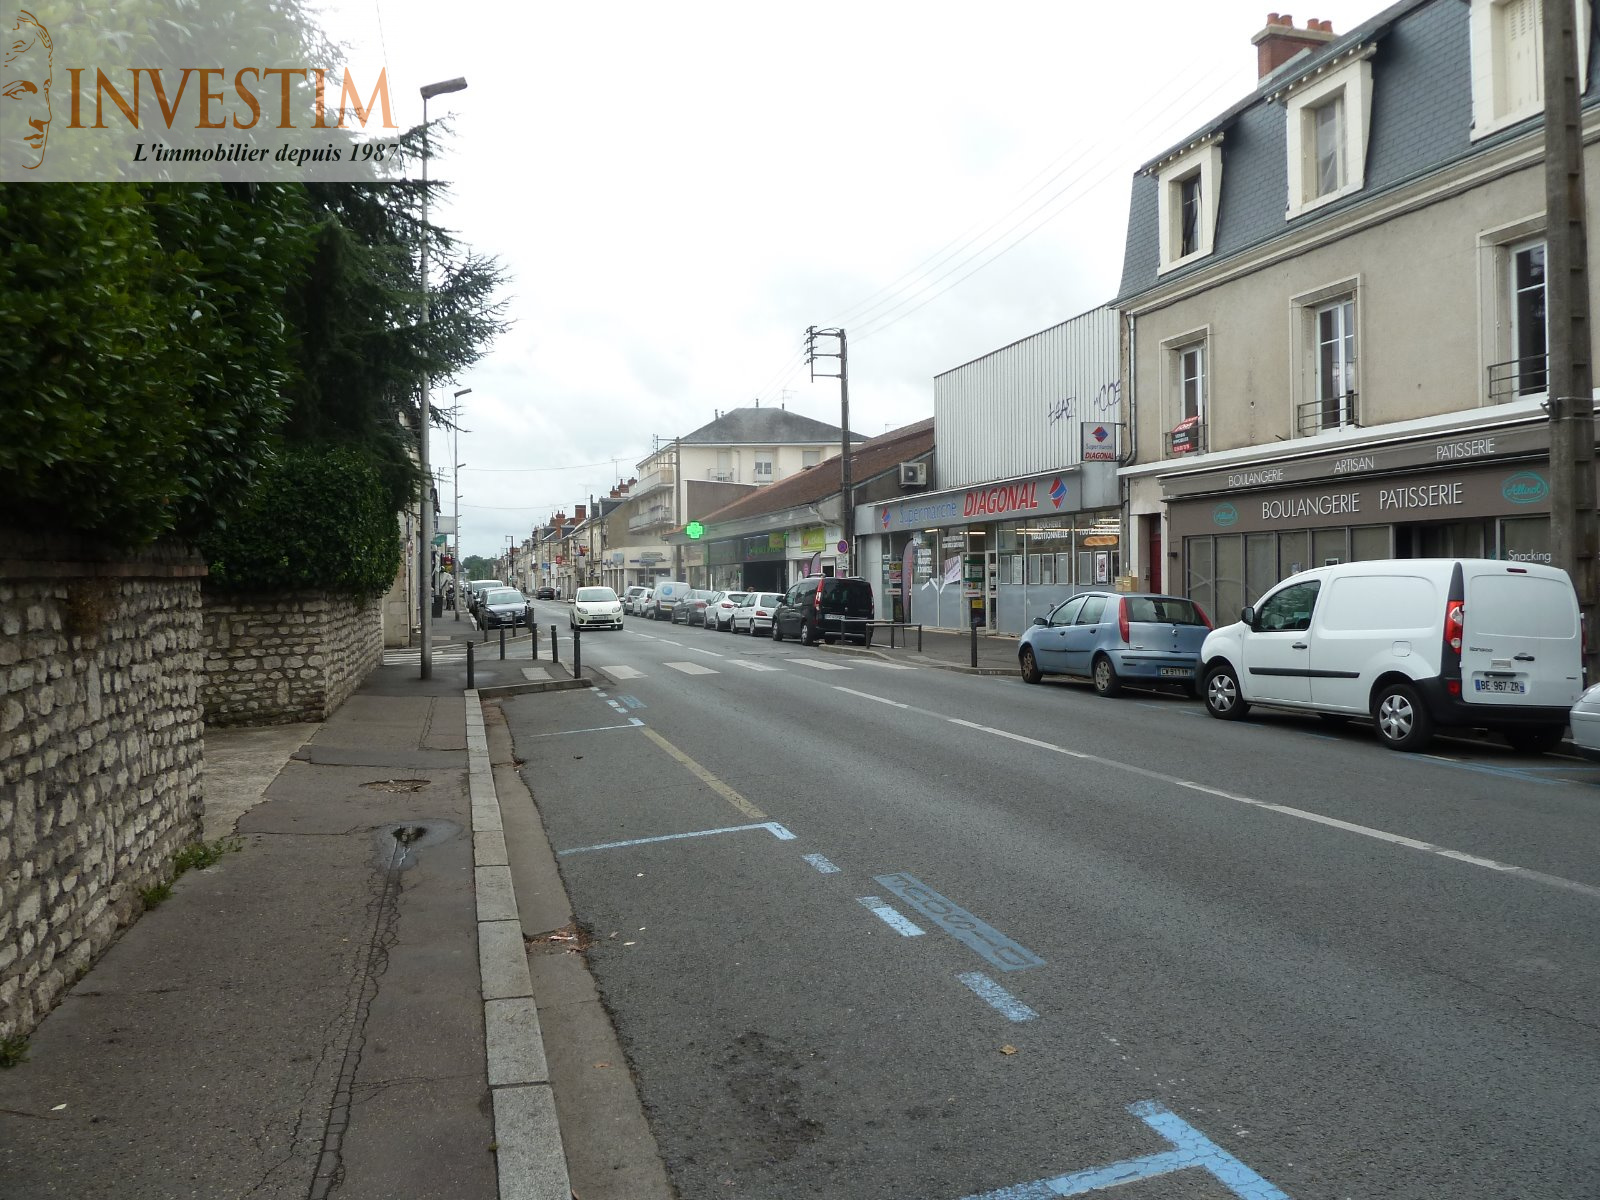 Location Immobilier Professionnel Local commercial Blois 41000